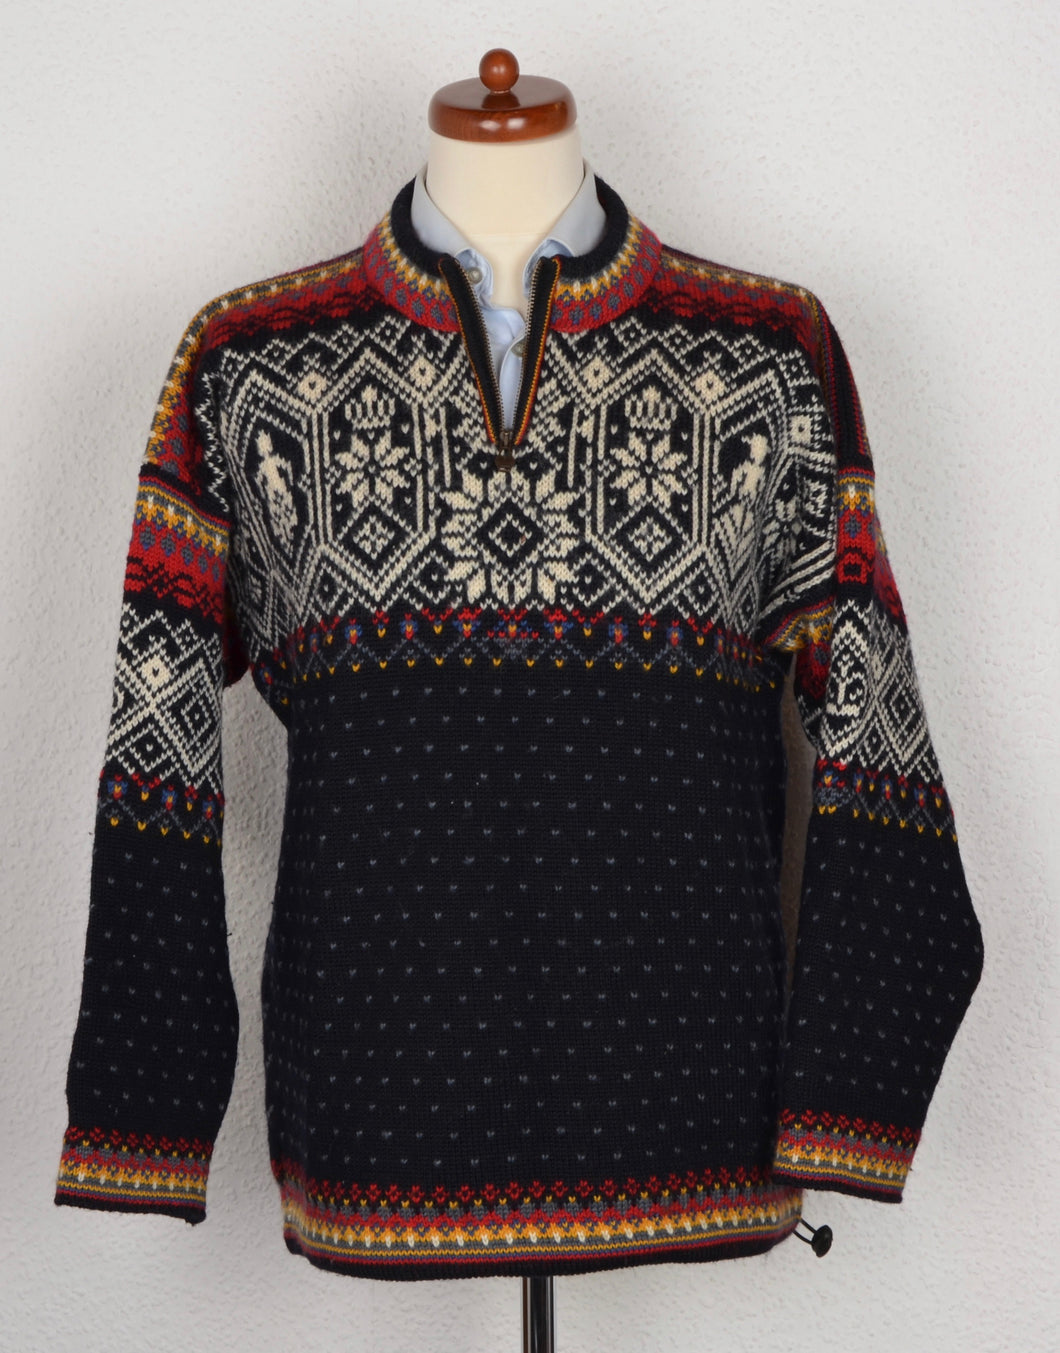 Dale of Norway Knit Sweater - Black, Red, White